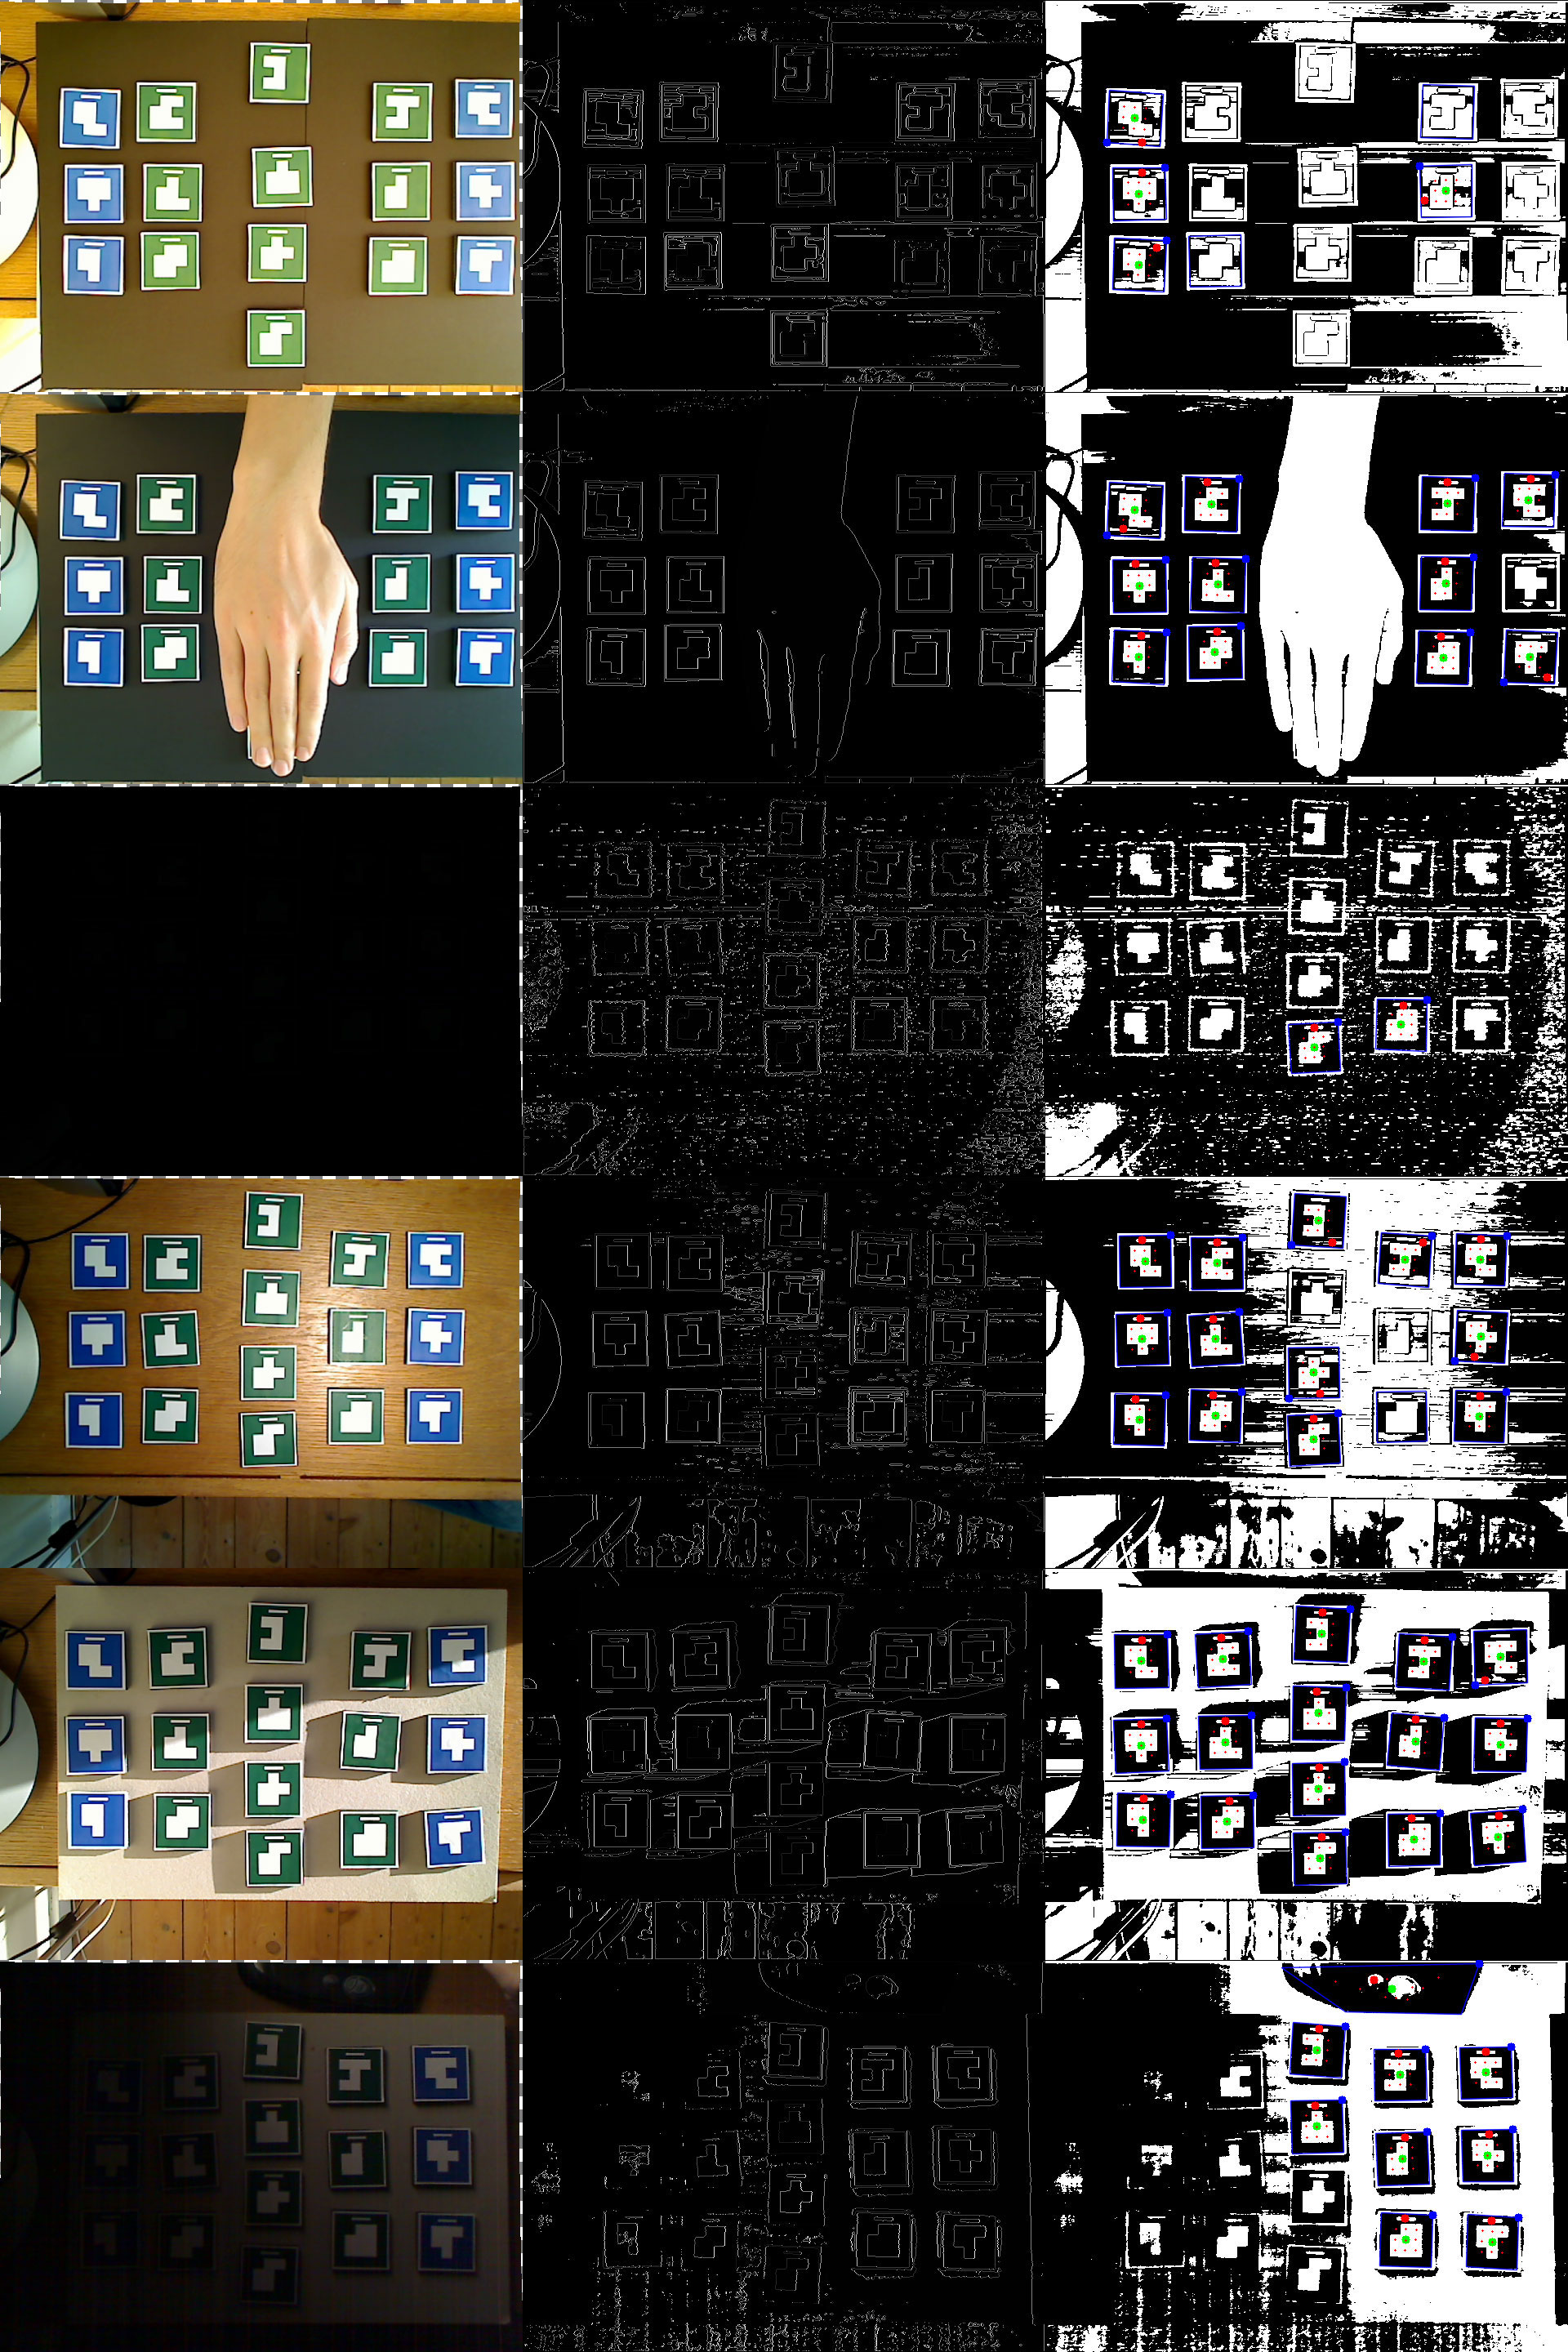 Various lighting scenarios to determine robustness of tag detection algorithm. For each scenario, three pictures are shown. Camera image (with radial distortion compensation), Edge detected image, and the final tag detection result. 1) (Top image) Regular lighting conditions, black backboard. 2) Regular lighting conditions, black backboard with hand. 3) Dark lighting conditions. 4) Spot-light conditions. 5) Half shadowed lighting conditions. 6) Very poor lighting conditions.